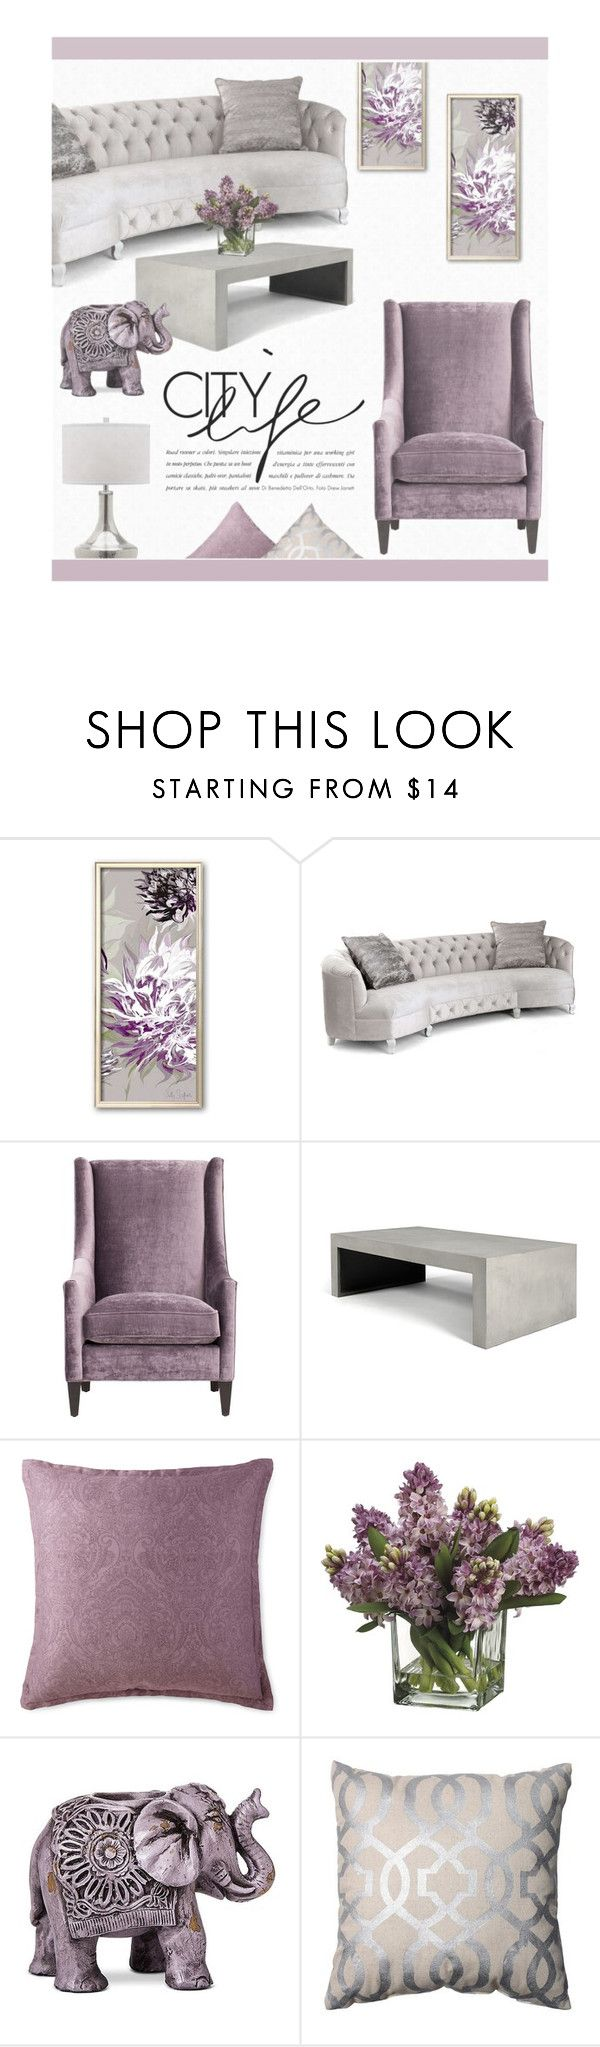 Lilac And Grey By Zaycelik On Polyvore Featuring Interior Interiors Design